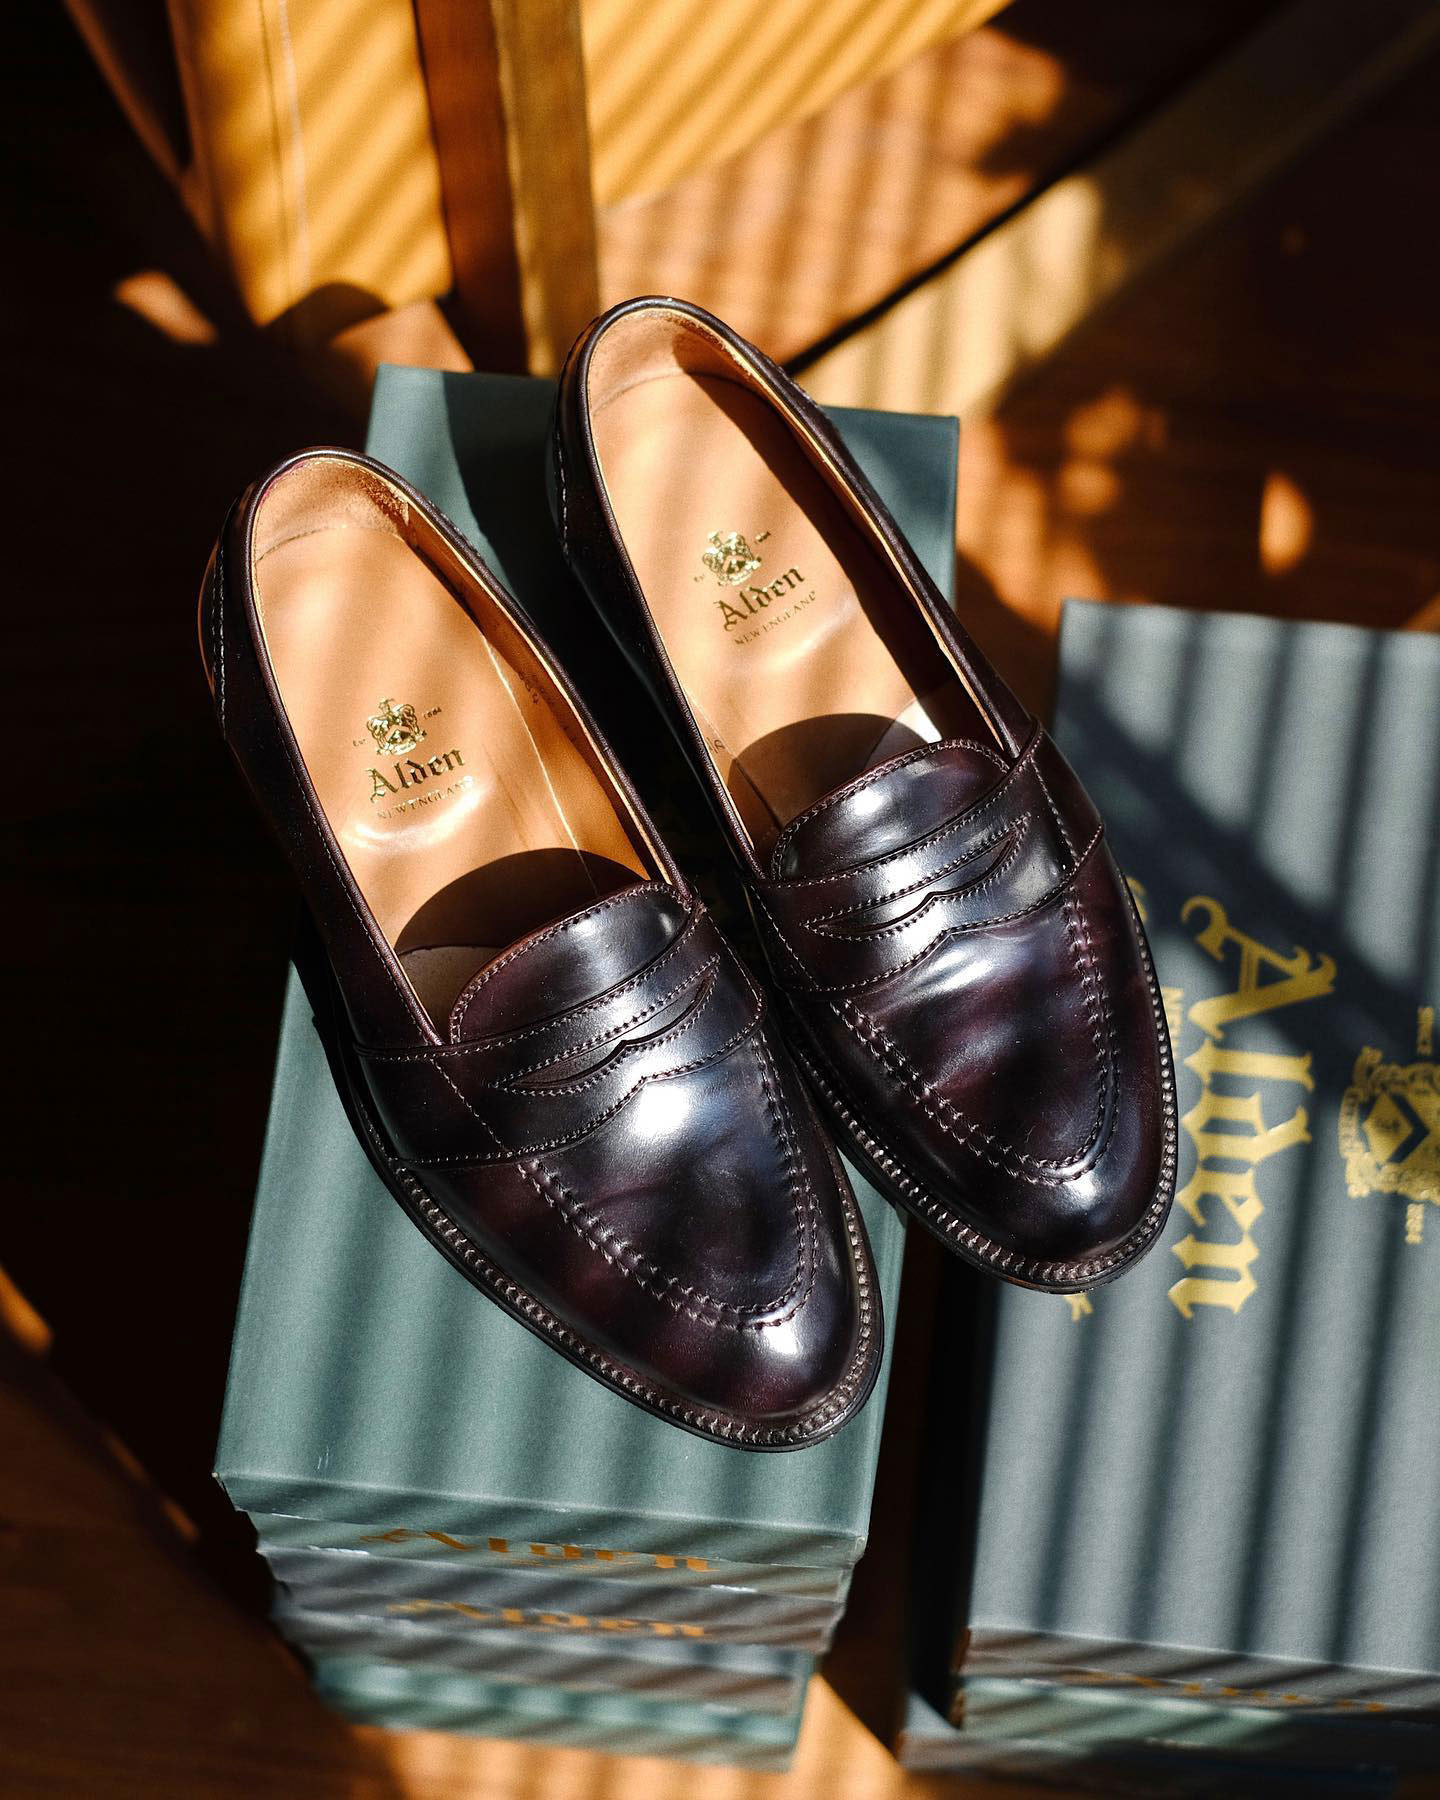 รองเท้า Alden Full Strap Loafers